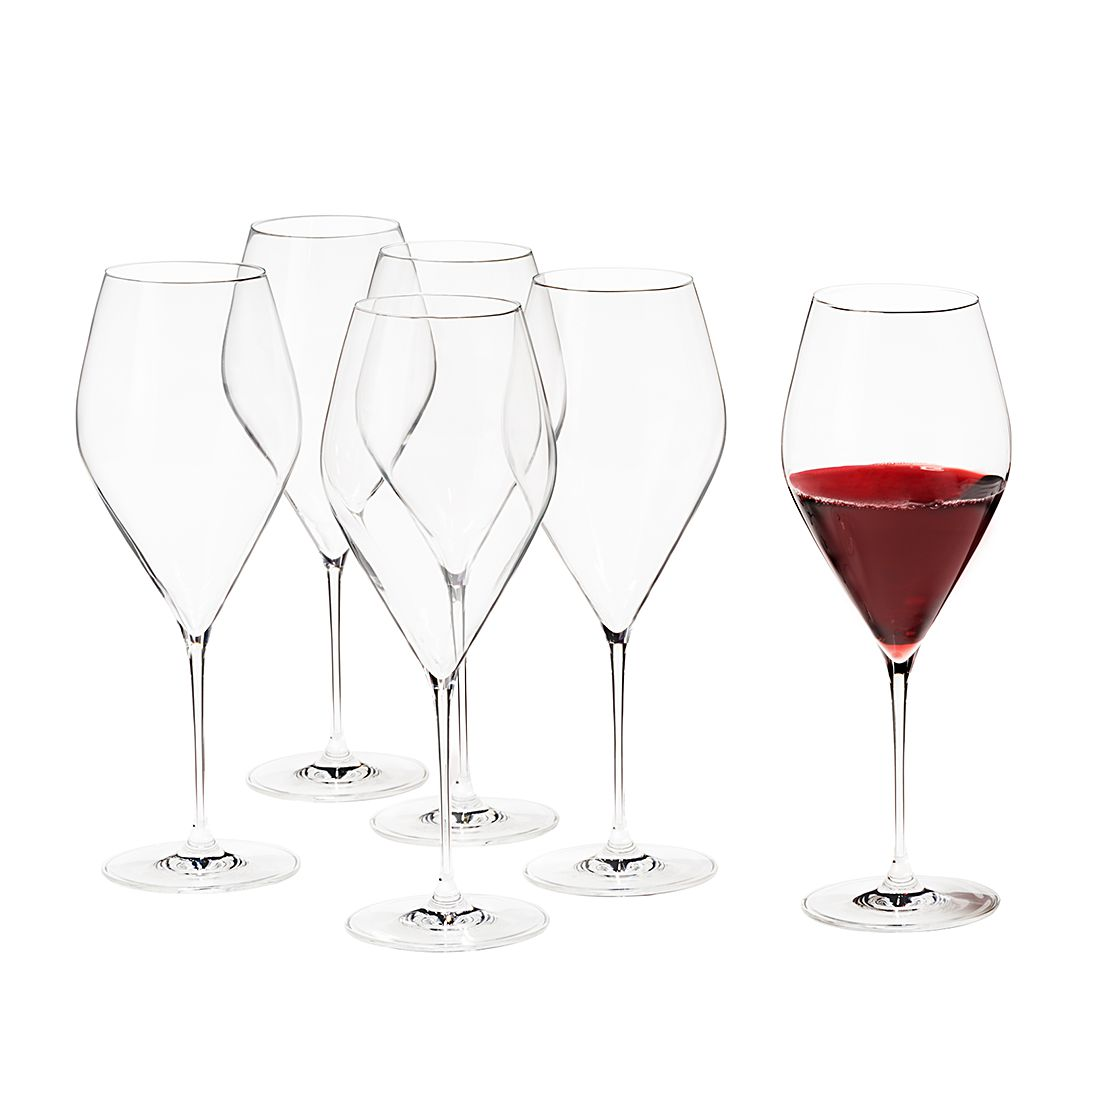 Verre vin rossini lot de 6 transparent - Vin rossini ...